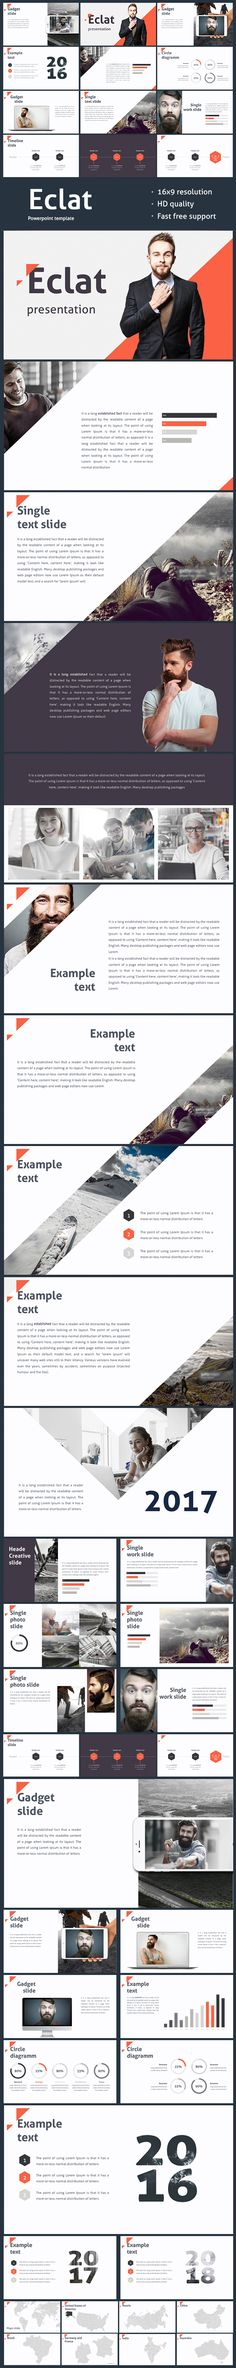 Eclat Powerpoint template - Creative PowerPoint Templates